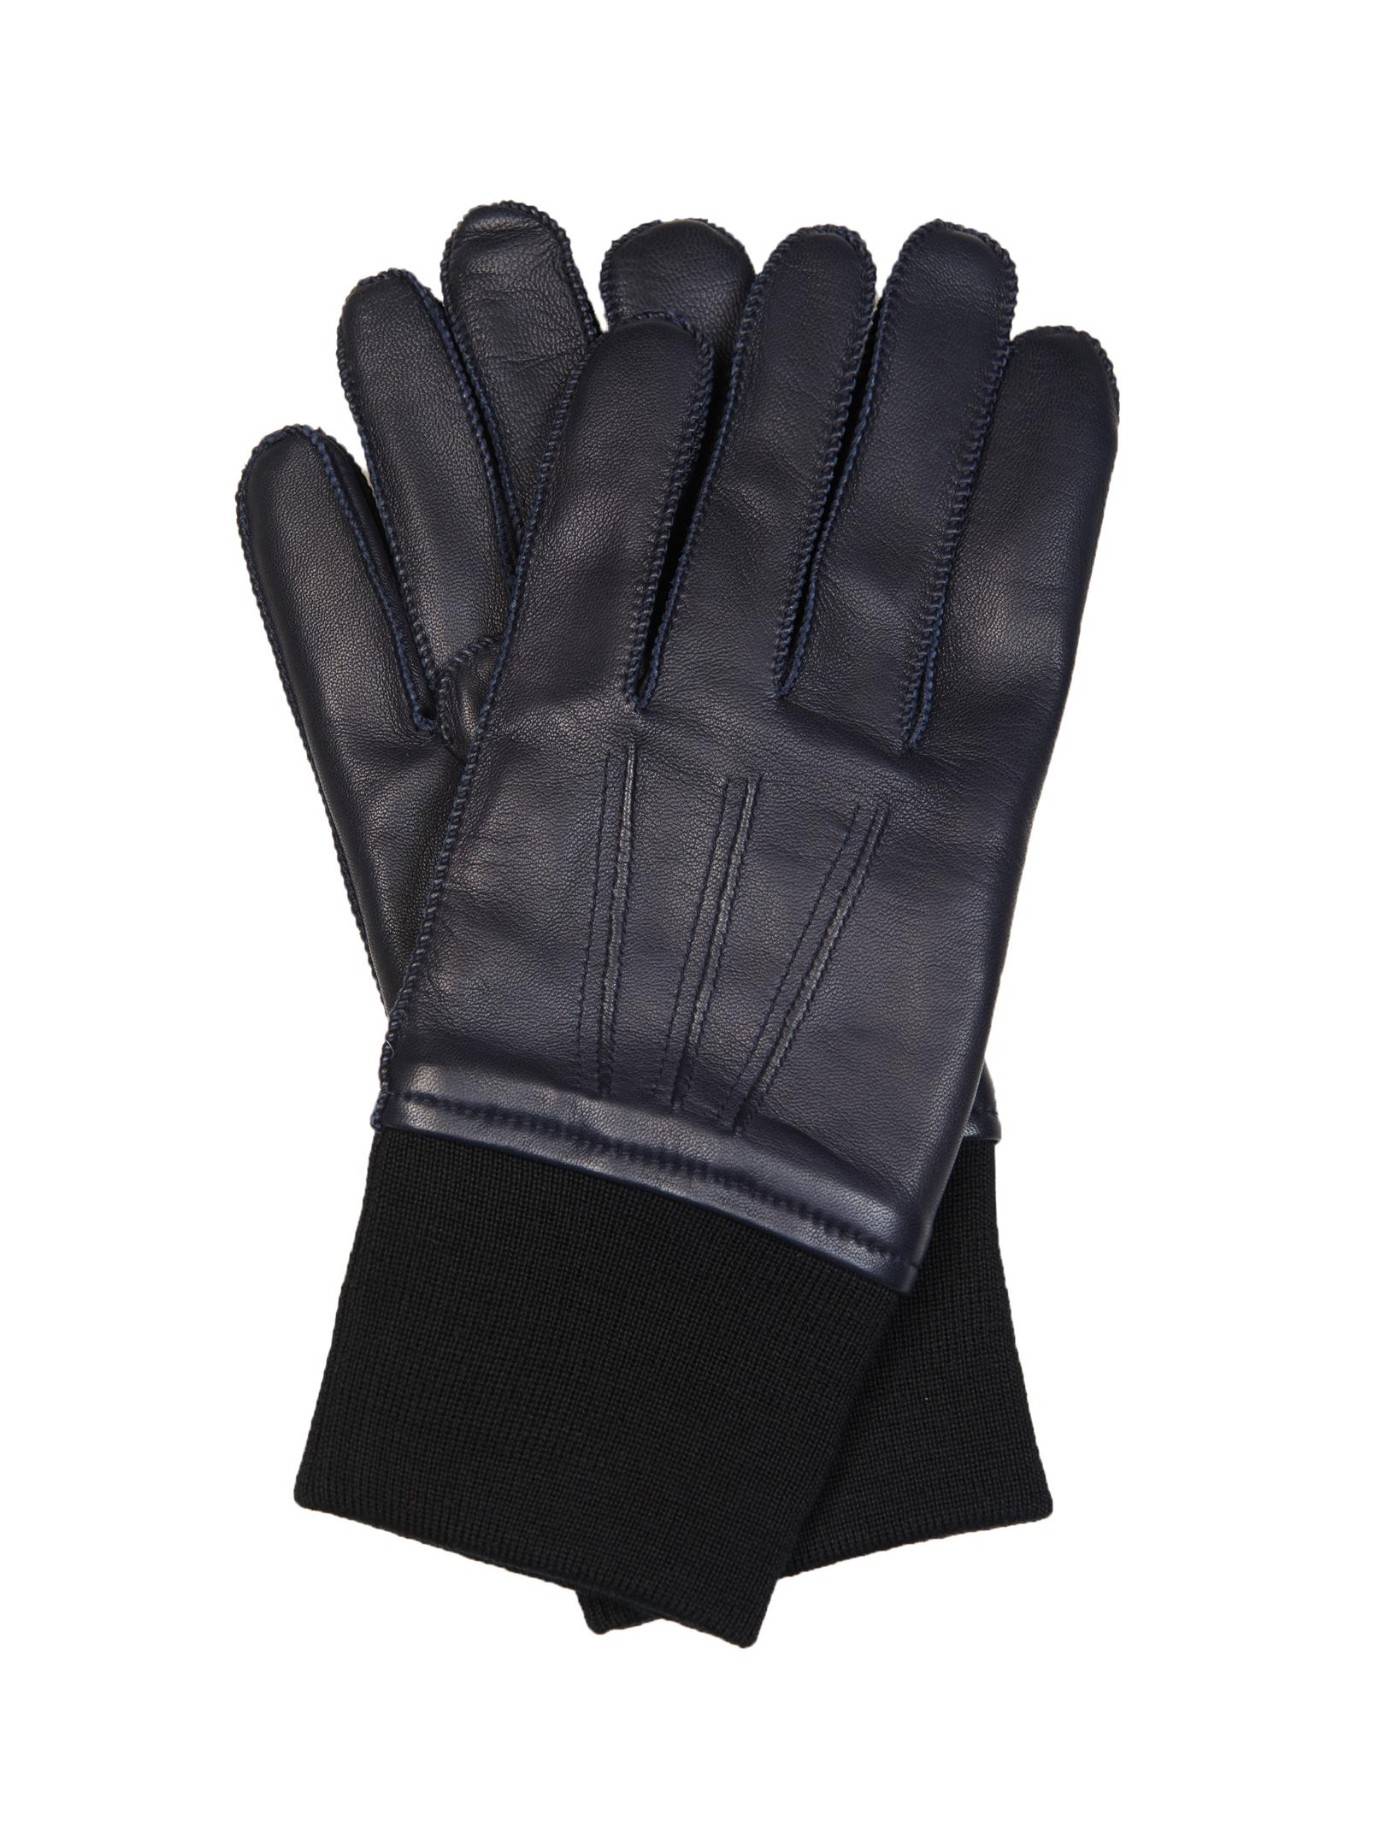 Mens leather gloves with cuff - Gallery